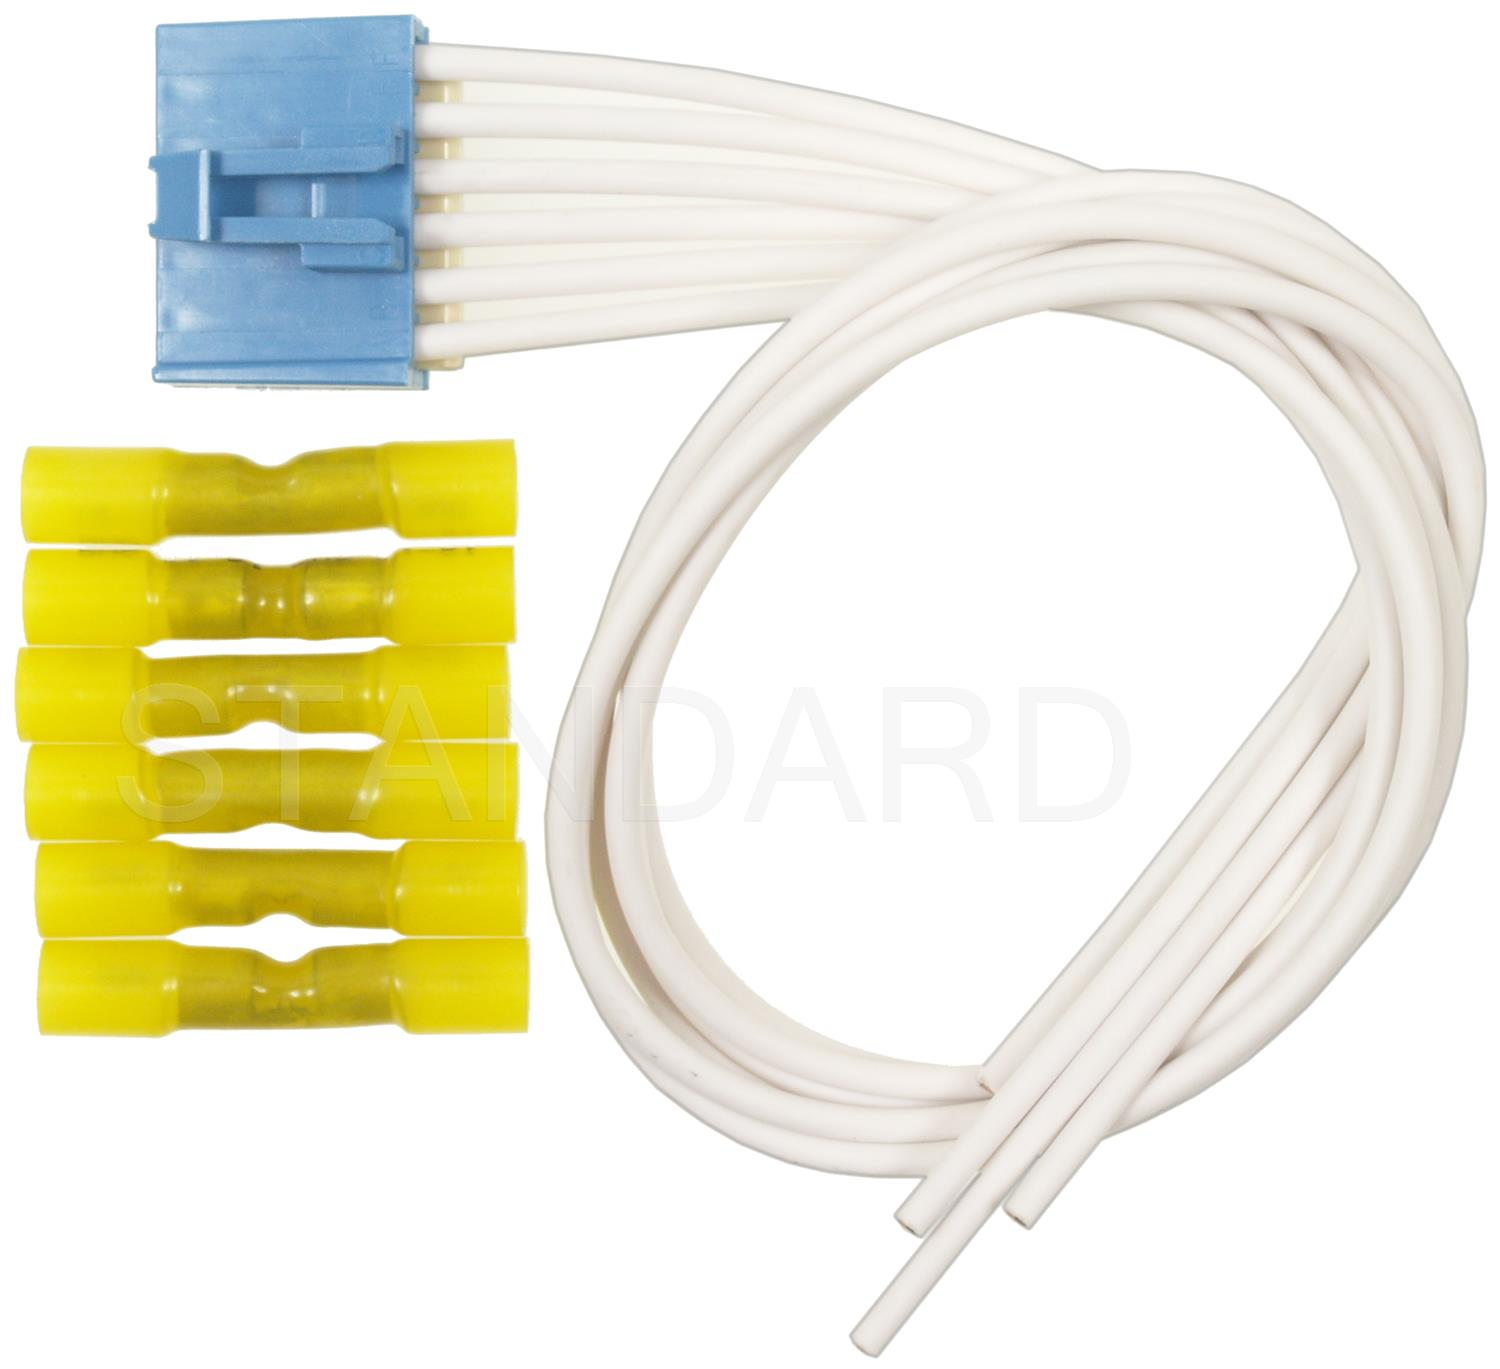 hight resolution of 1993 buick skylark body wiring harness connector